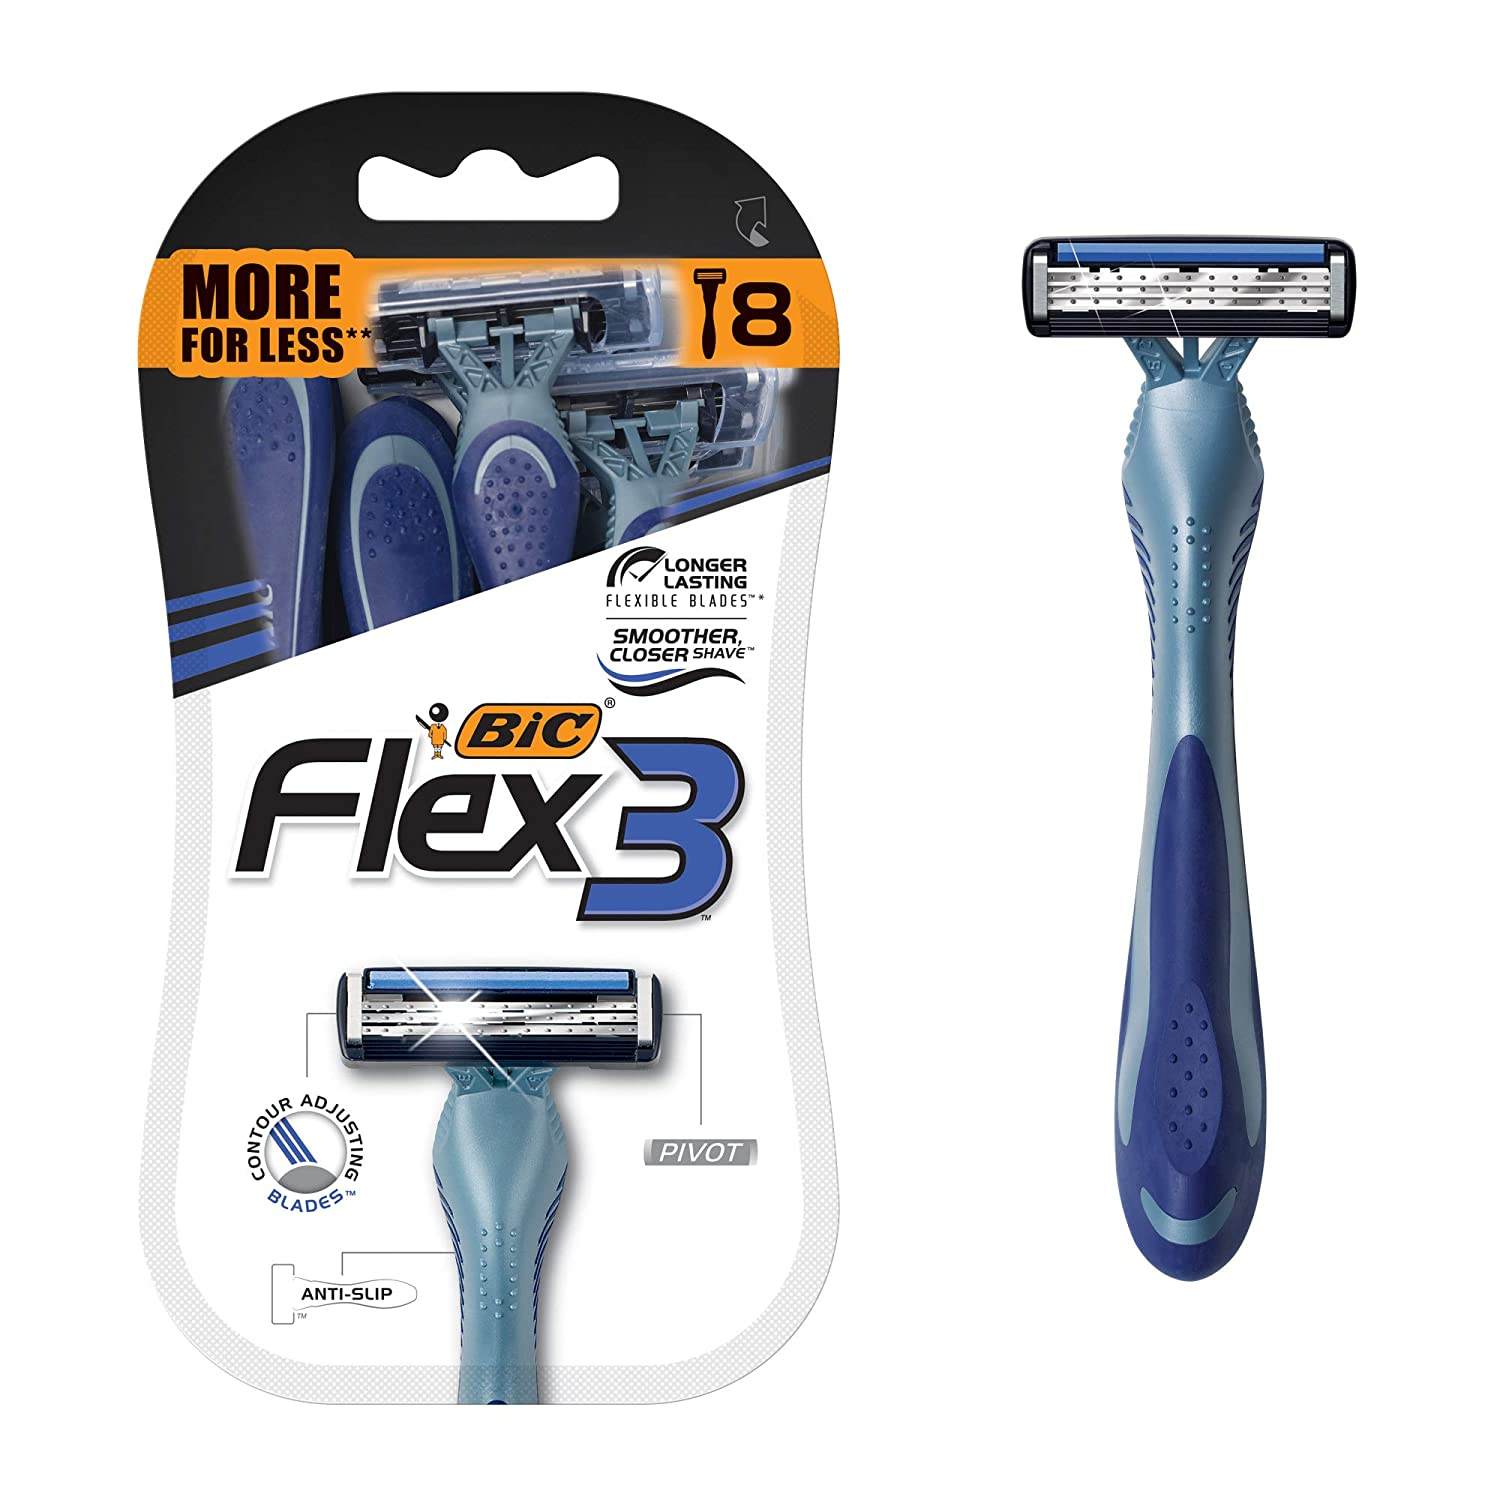 BIC Flex 3 Men's 3-Blade Disposable Razor, 8 Count